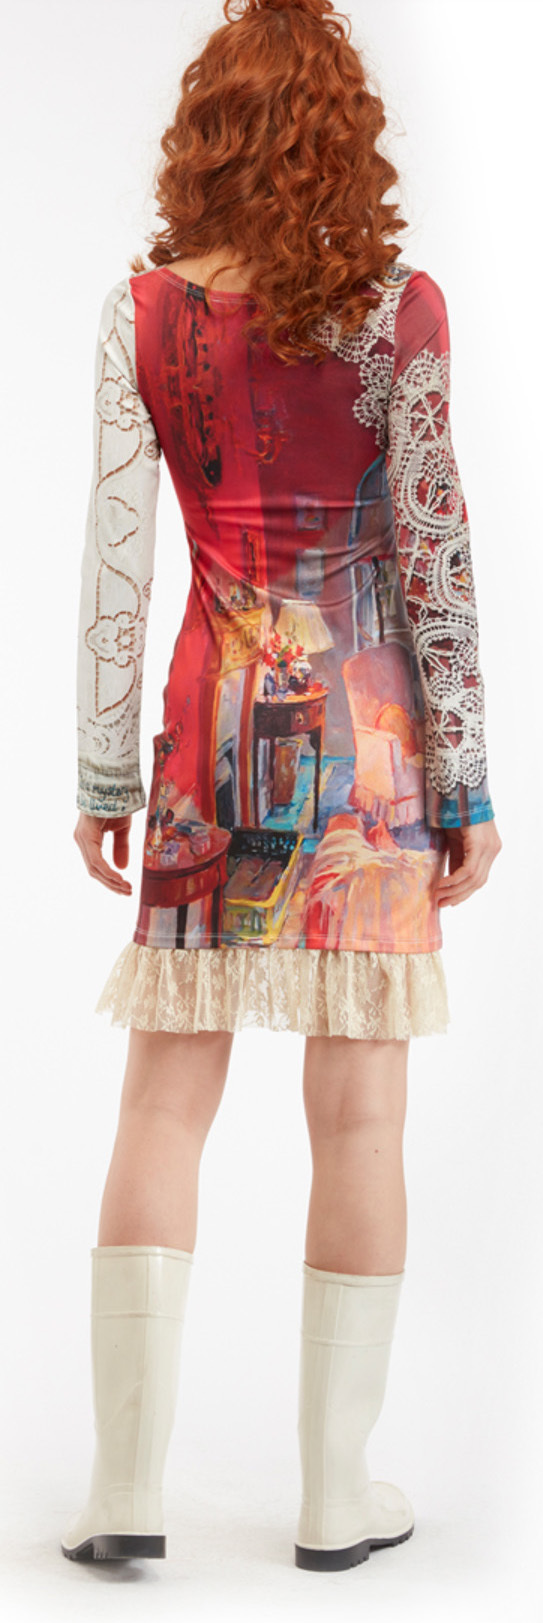 IPNG: Snapshot Of Poetic Layers Pink Living Room Illusion Dress